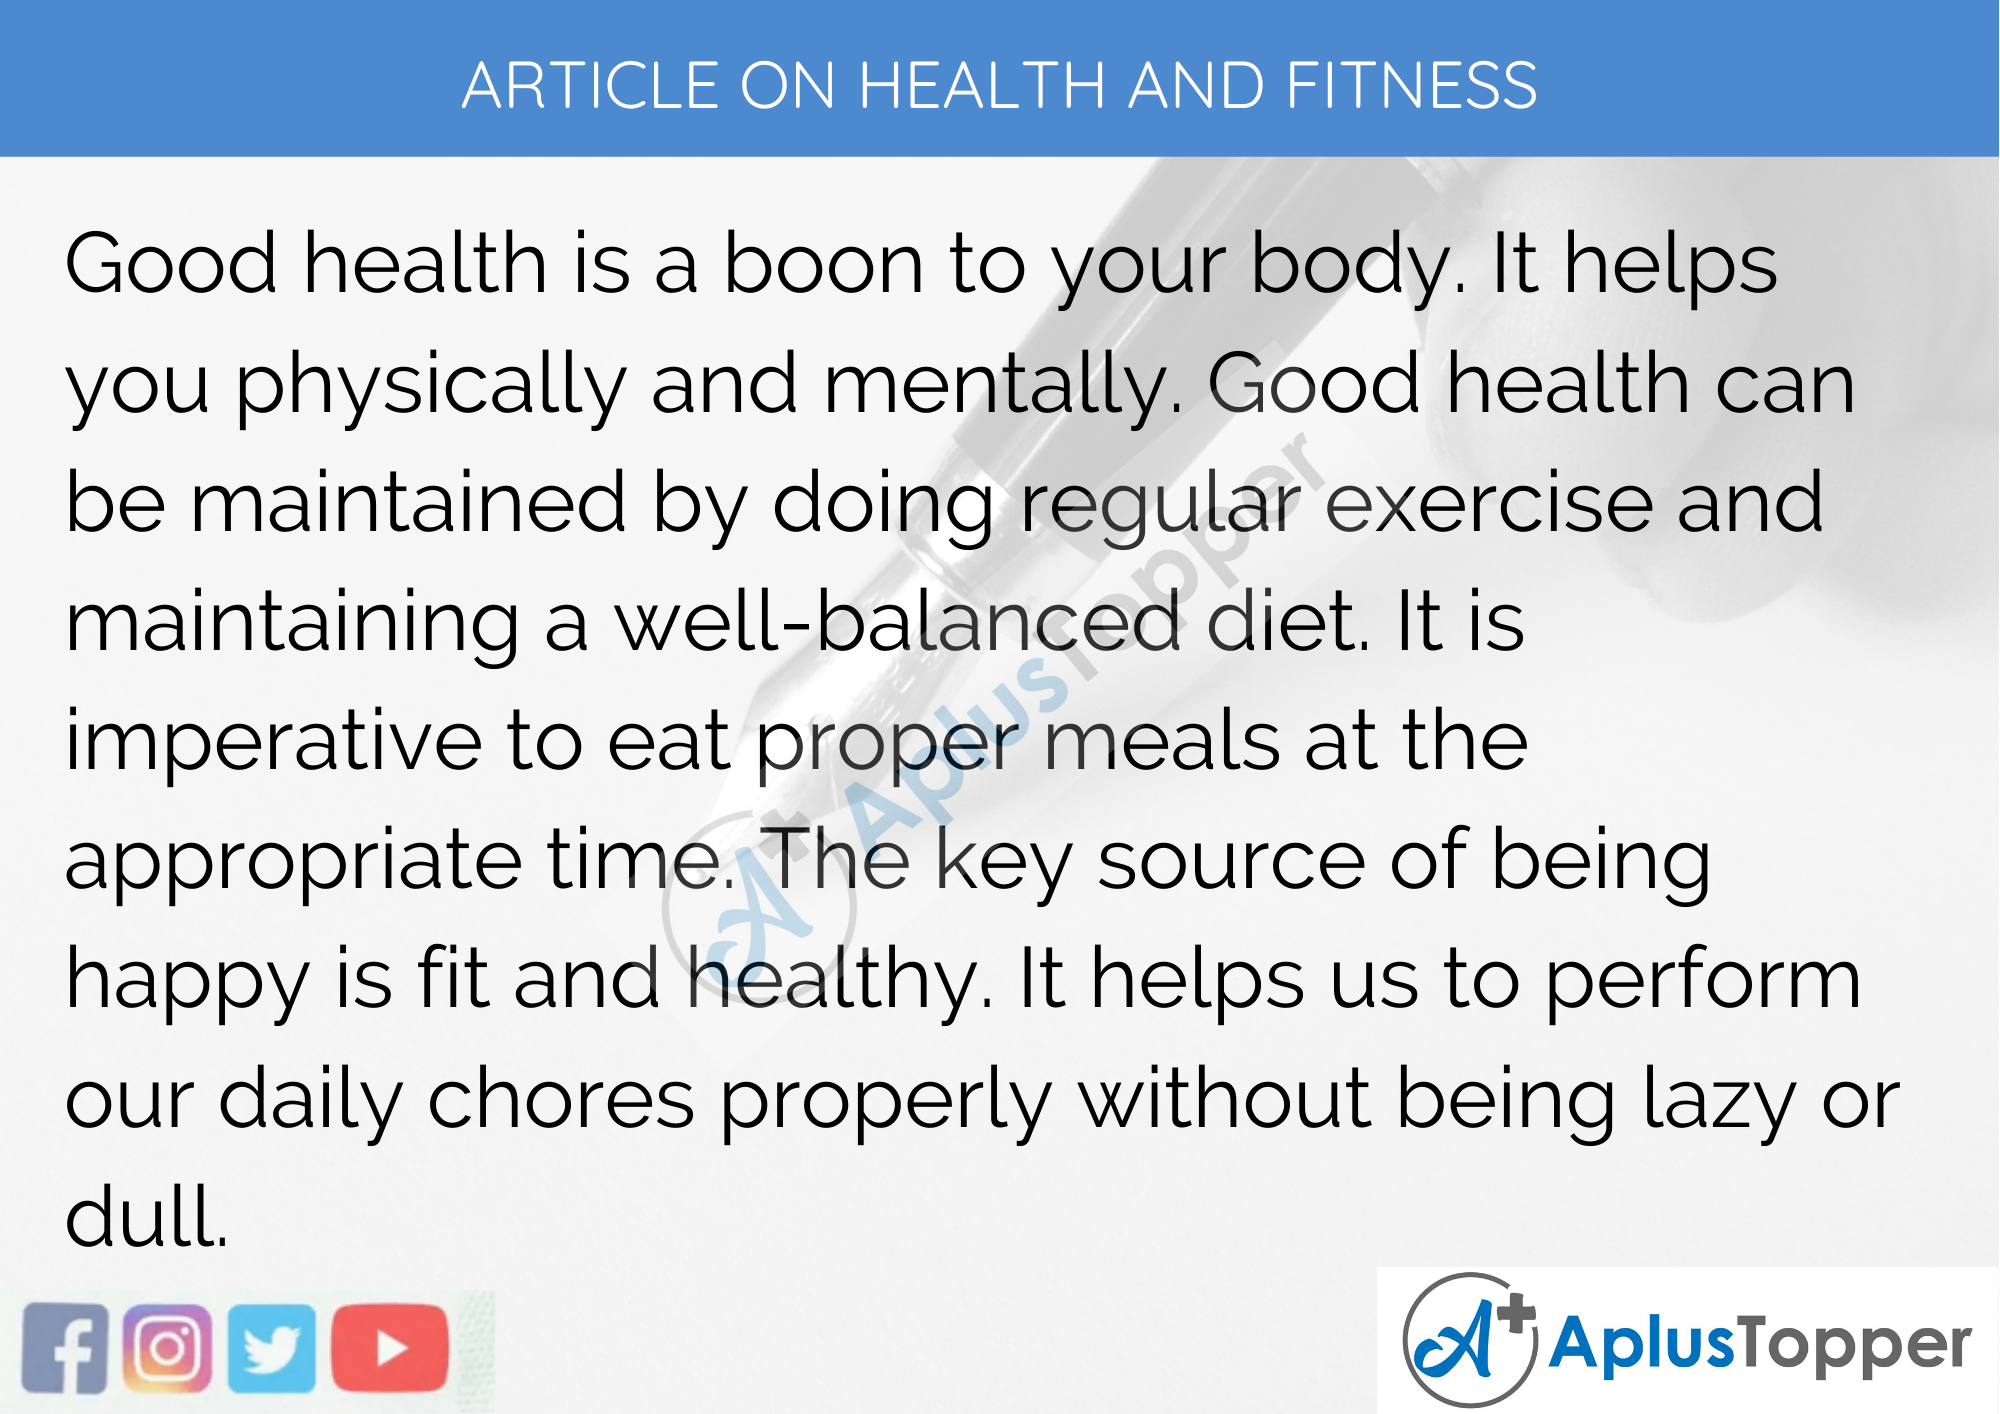 Short Articles on Health and Fitness 200 Words in English